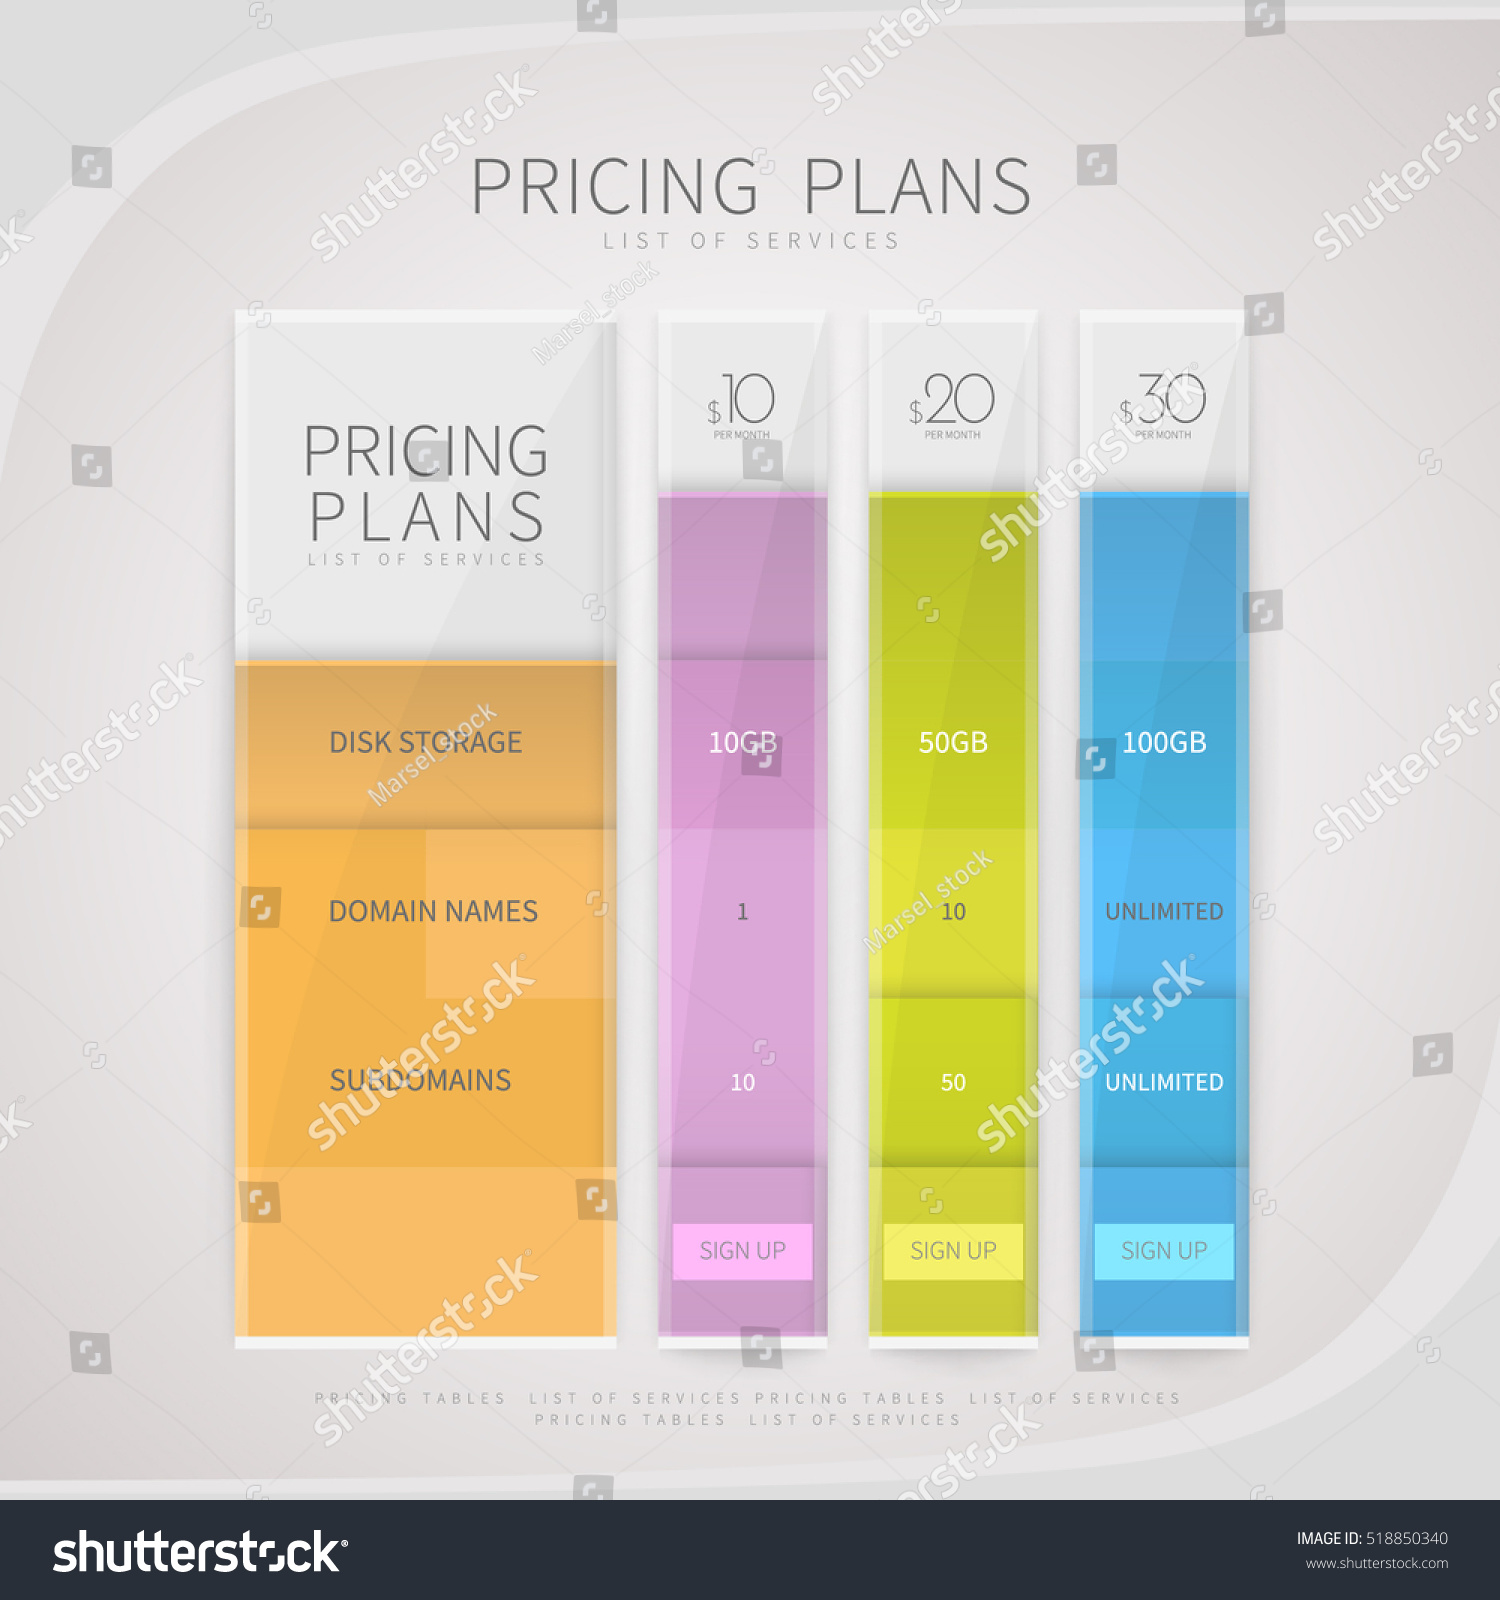 Pricing Plan: Pricing Comparison Plan Set Commercial Business Stock